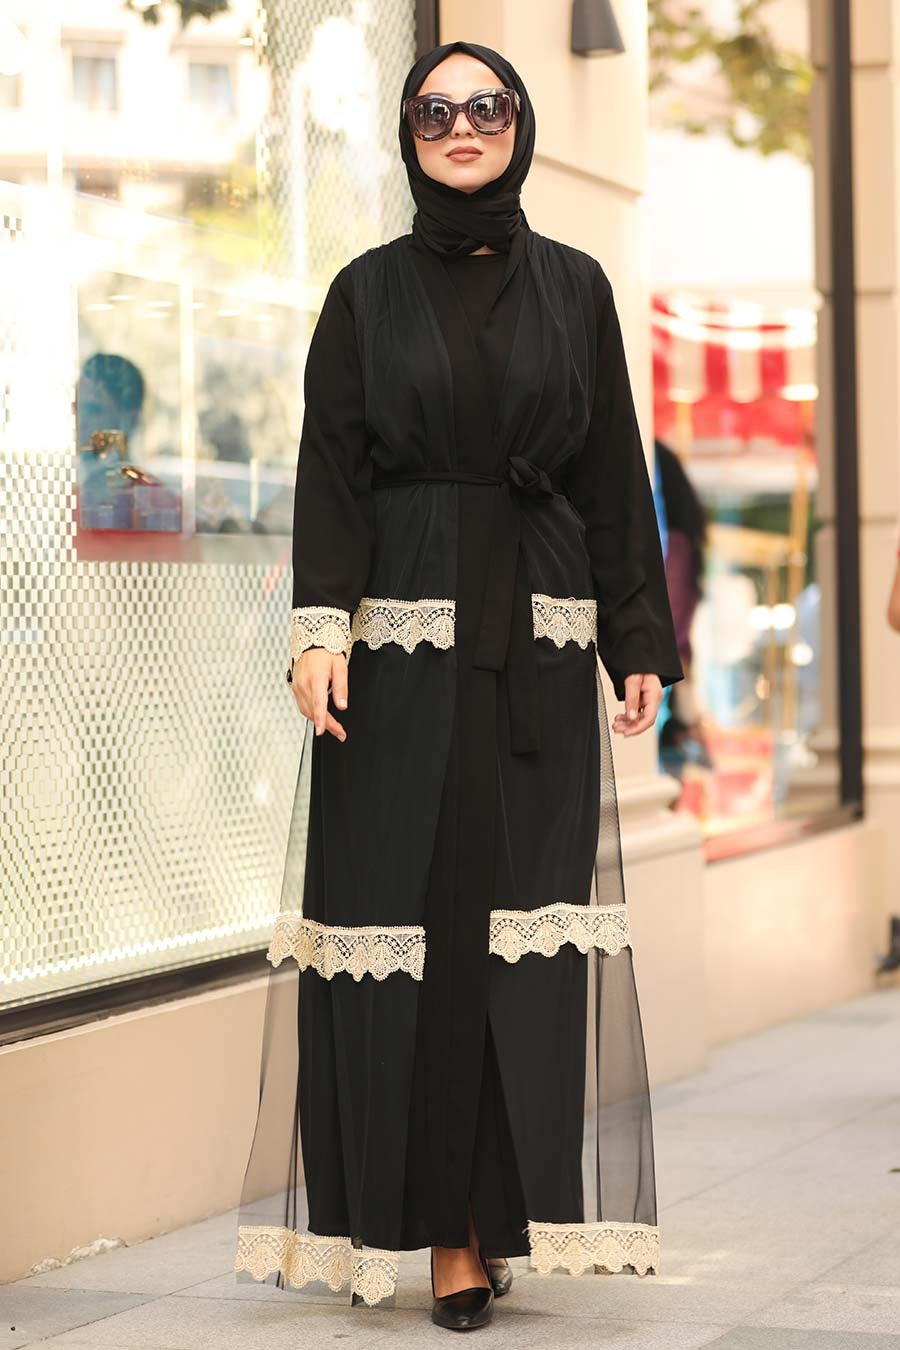 Women's Lace Detail Black Modest Abaya